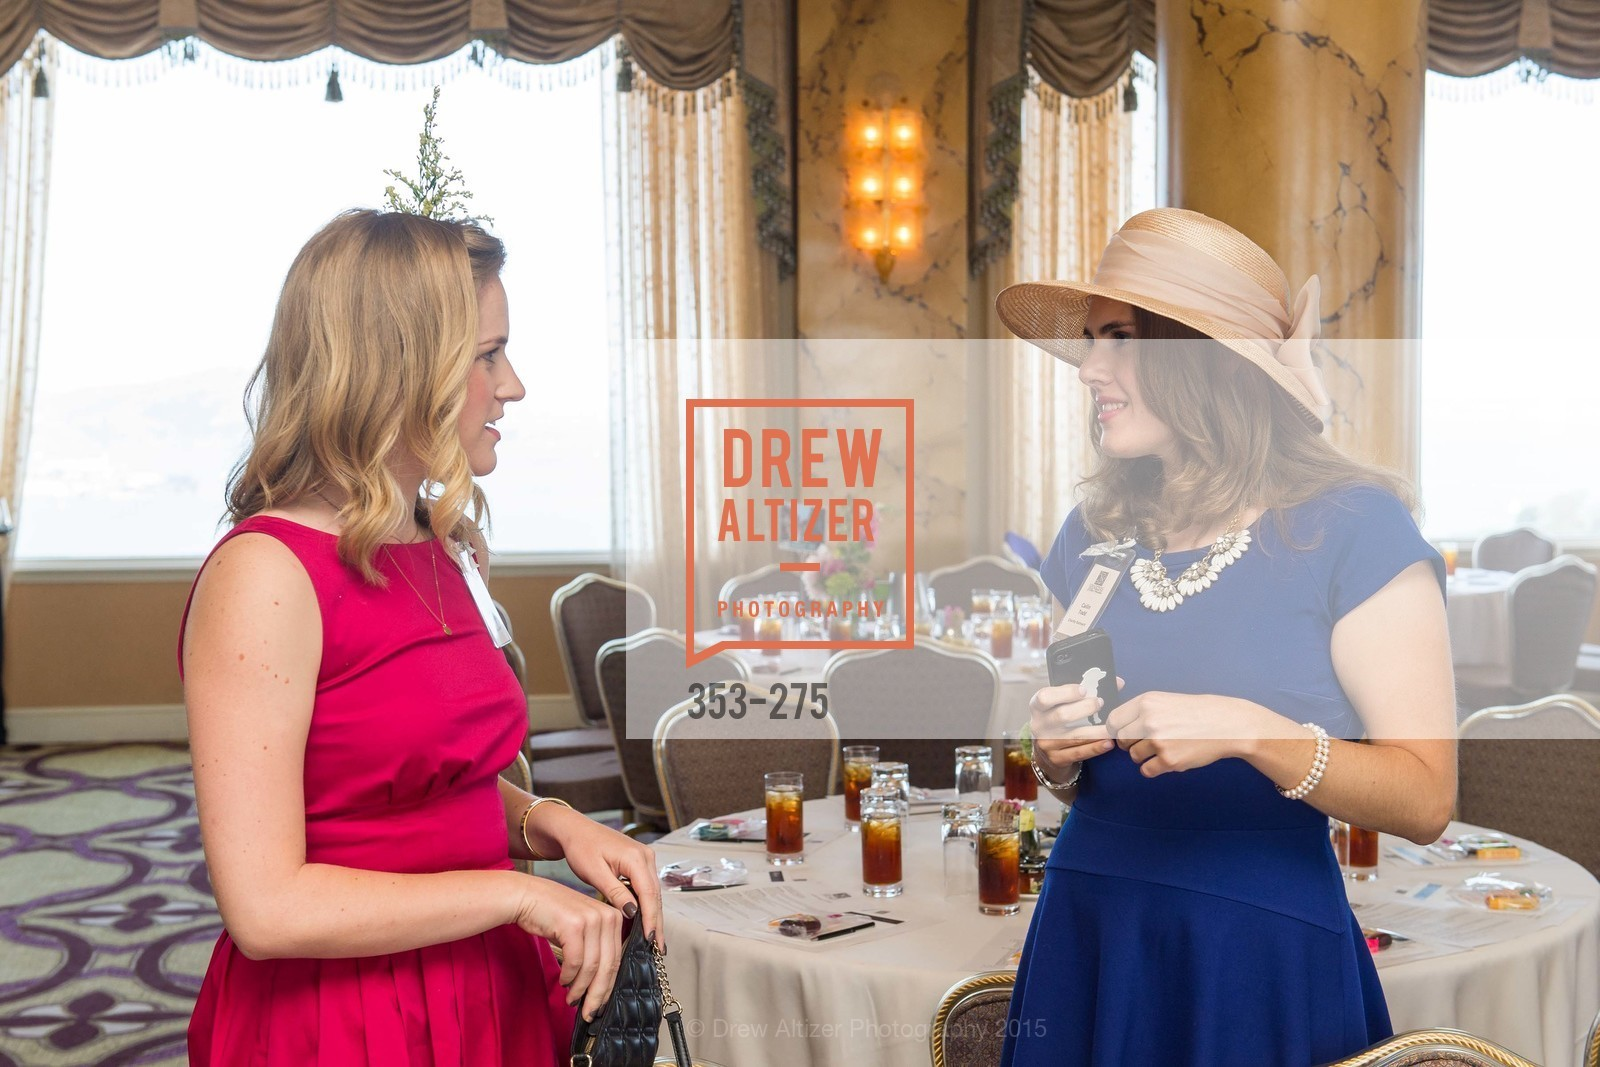 Beth Windheuser, Cailin Todd, Spinsters of San Francisco New Member Tea 2015, The Fairmont Hotel, Crown Room. 950 Mason Street, August 30th, 2015,Drew Altizer, Drew Altizer Photography, full-service agency, private events, San Francisco photographer, photographer california